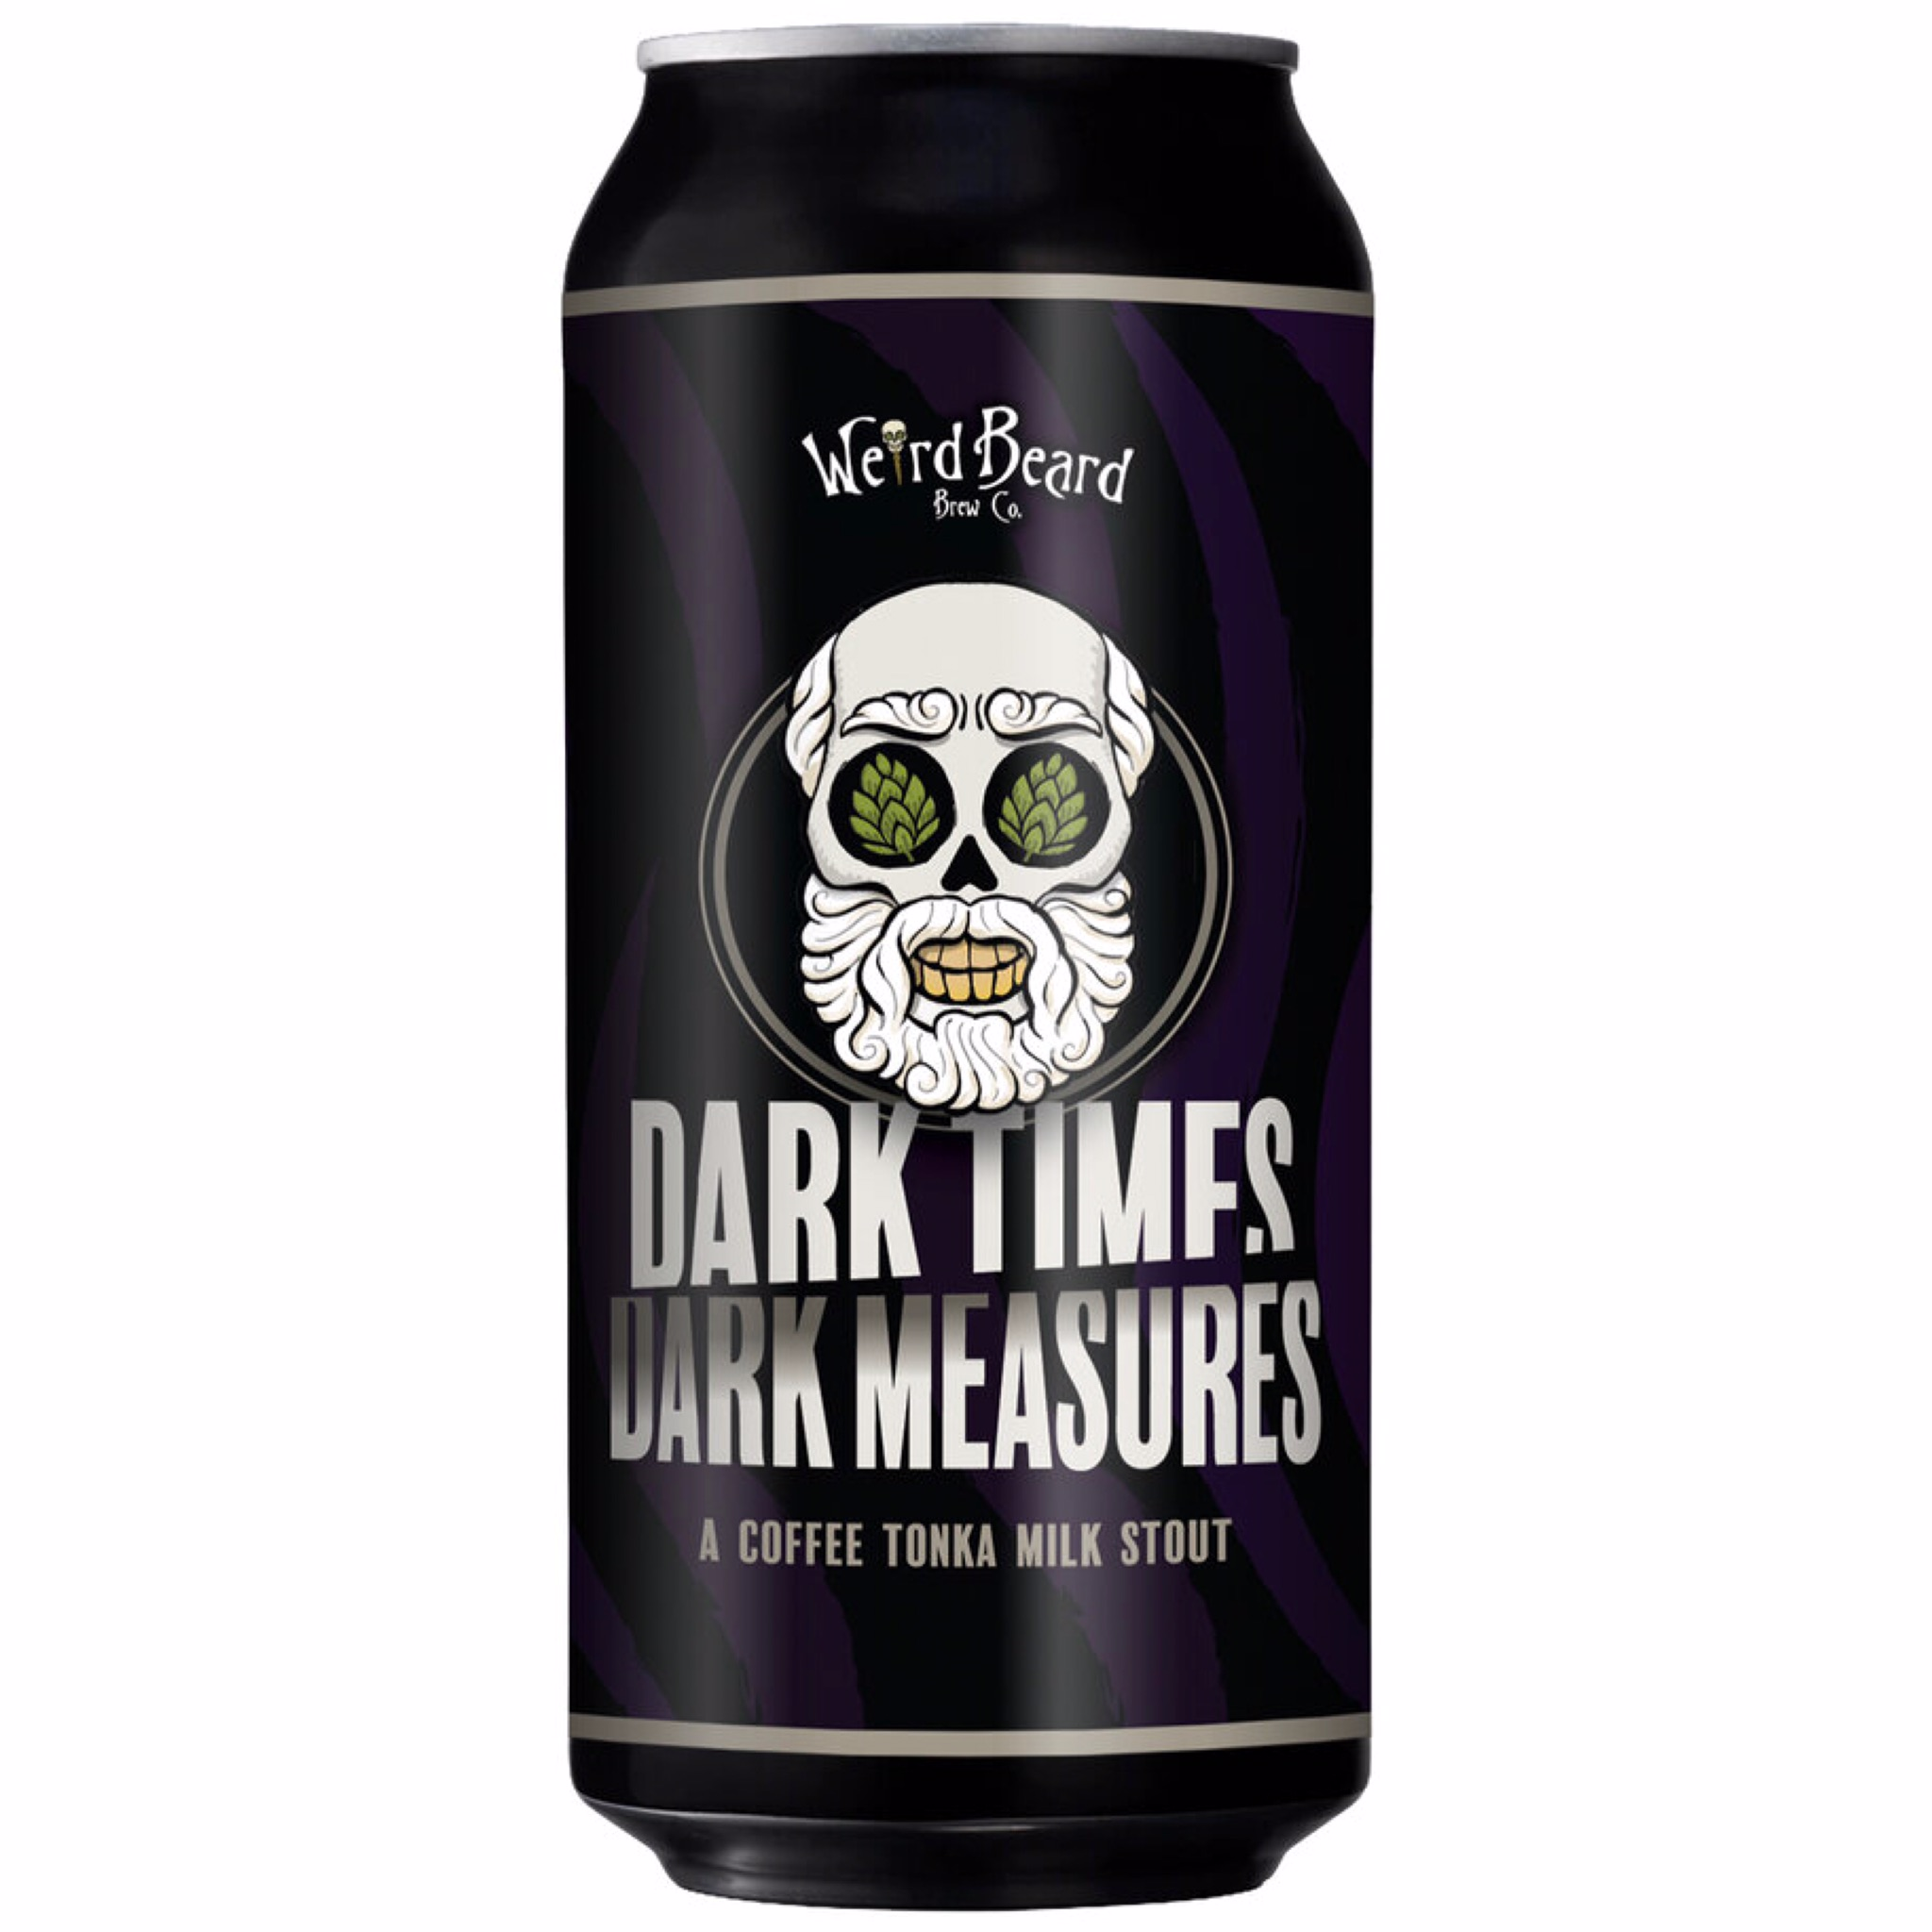 Dark Times Dark Measures Coffee Tonka Milk Stout 6.2% 440ml Weird Beard Brew Co